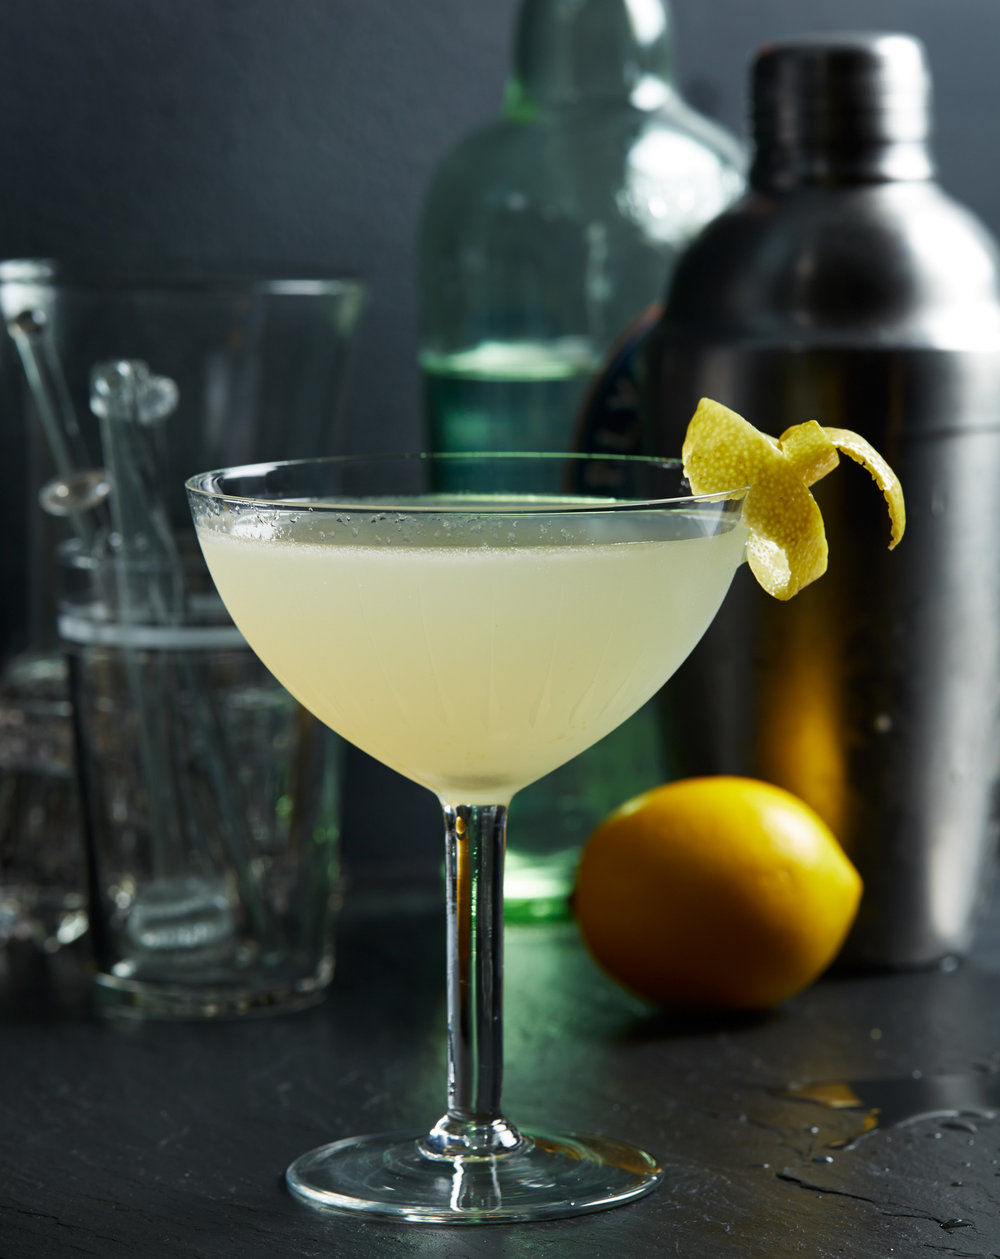 Photo: Tara Donne  This cocktail is great for winter--it's citrus season! The Meyer lemon is sweeter and more herbal than its common cousin, and can be found in specialty supermarkets. Look for dark yellow fruit that is heavy for its size. The lemon syrup is a great mixer with gin, vodka or prosecco, or spooned over plain yogurt. The cocktail recipe can be made in a martini glass as we have it here, or can be served as a punch or mixed with seltzer and ice for a high ball. You can also make it a day ahead (without the seltzer), and keep it in a pitcher in the fridge until the festivities begin.  MEYER LEMON COCKTAIL  Serves 6  2   tablespoons finely grated Meyer lemon zest  1⁄2  cup cane sugar  1⁄2  teaspoon fine sea salt  1   cup freshly squeezed Meyer lemon juice  1   cup gin  1   tablespoon dry curaçao or orange flavored liquer such as triple sec  1   whole Meyer lemon for garnishing  1   Chill six martini glasses in the freezer. Simmer the zest, sugar, salt, and 1⁄4 cup water together over medium heat, stirring occasionally until the sugar is dissolved, about five minutes. Cool to room temperature, stir in juice and strain.  2   Pull a twirl of zest from the whole Meyer lemon with a vegetable peeler. Wipe the inside of each glass with the yellow side of zest, so the each glass gets a little lemon oil on the inside of it. Add gin and curaçao, stir to combine. Shake in a cocktail strainer filled with ice. Shake vigorously until your hand is numb and starts to stick to the shaker. Strain into chilled cocktail glasses.